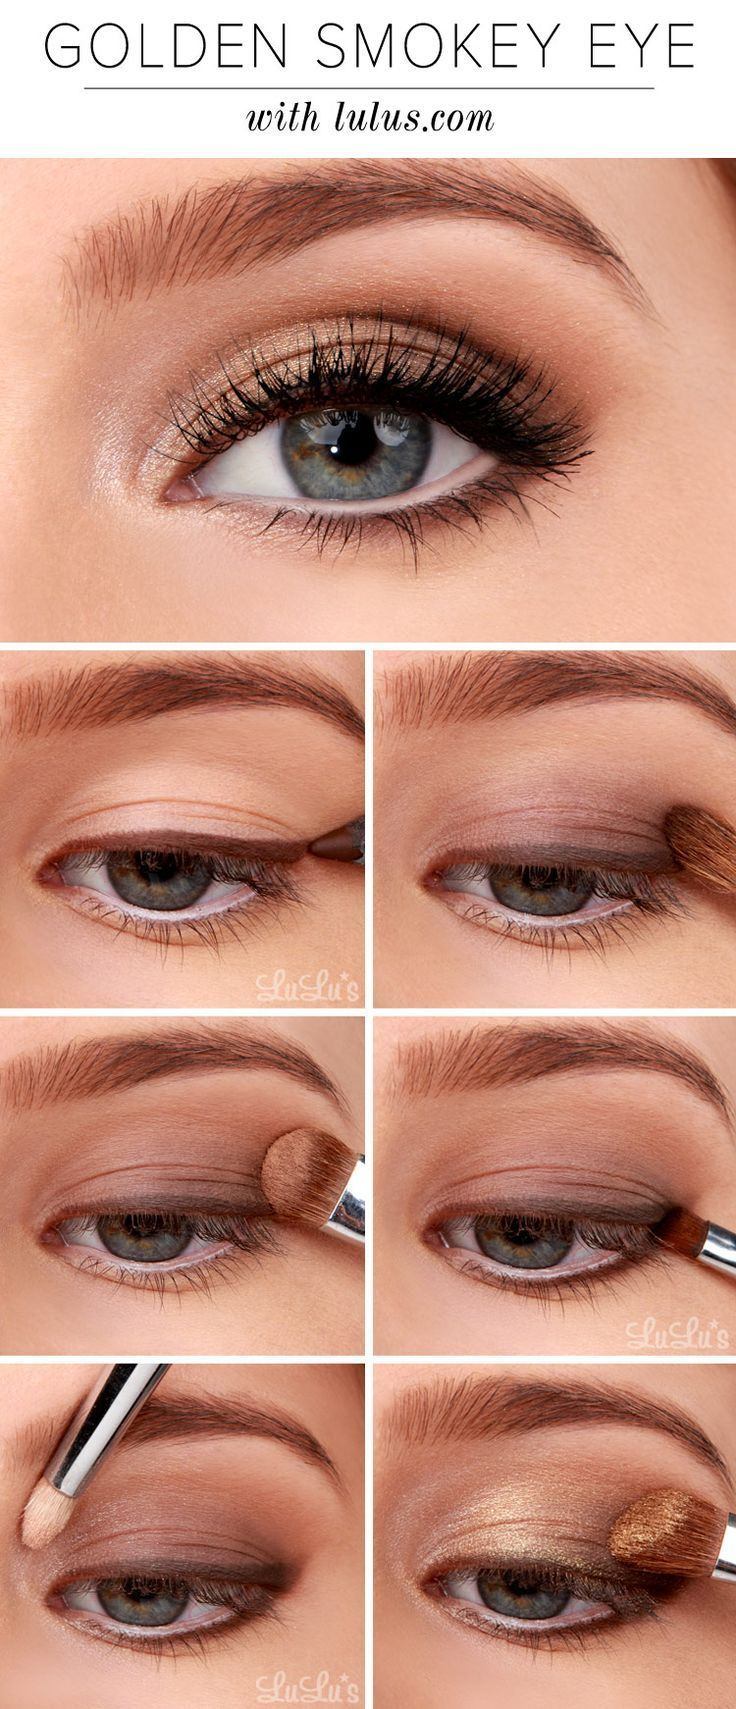 12 Awesome Smokey Eyes Tutorials The Weekly Round Up – Titicrafty by Camila